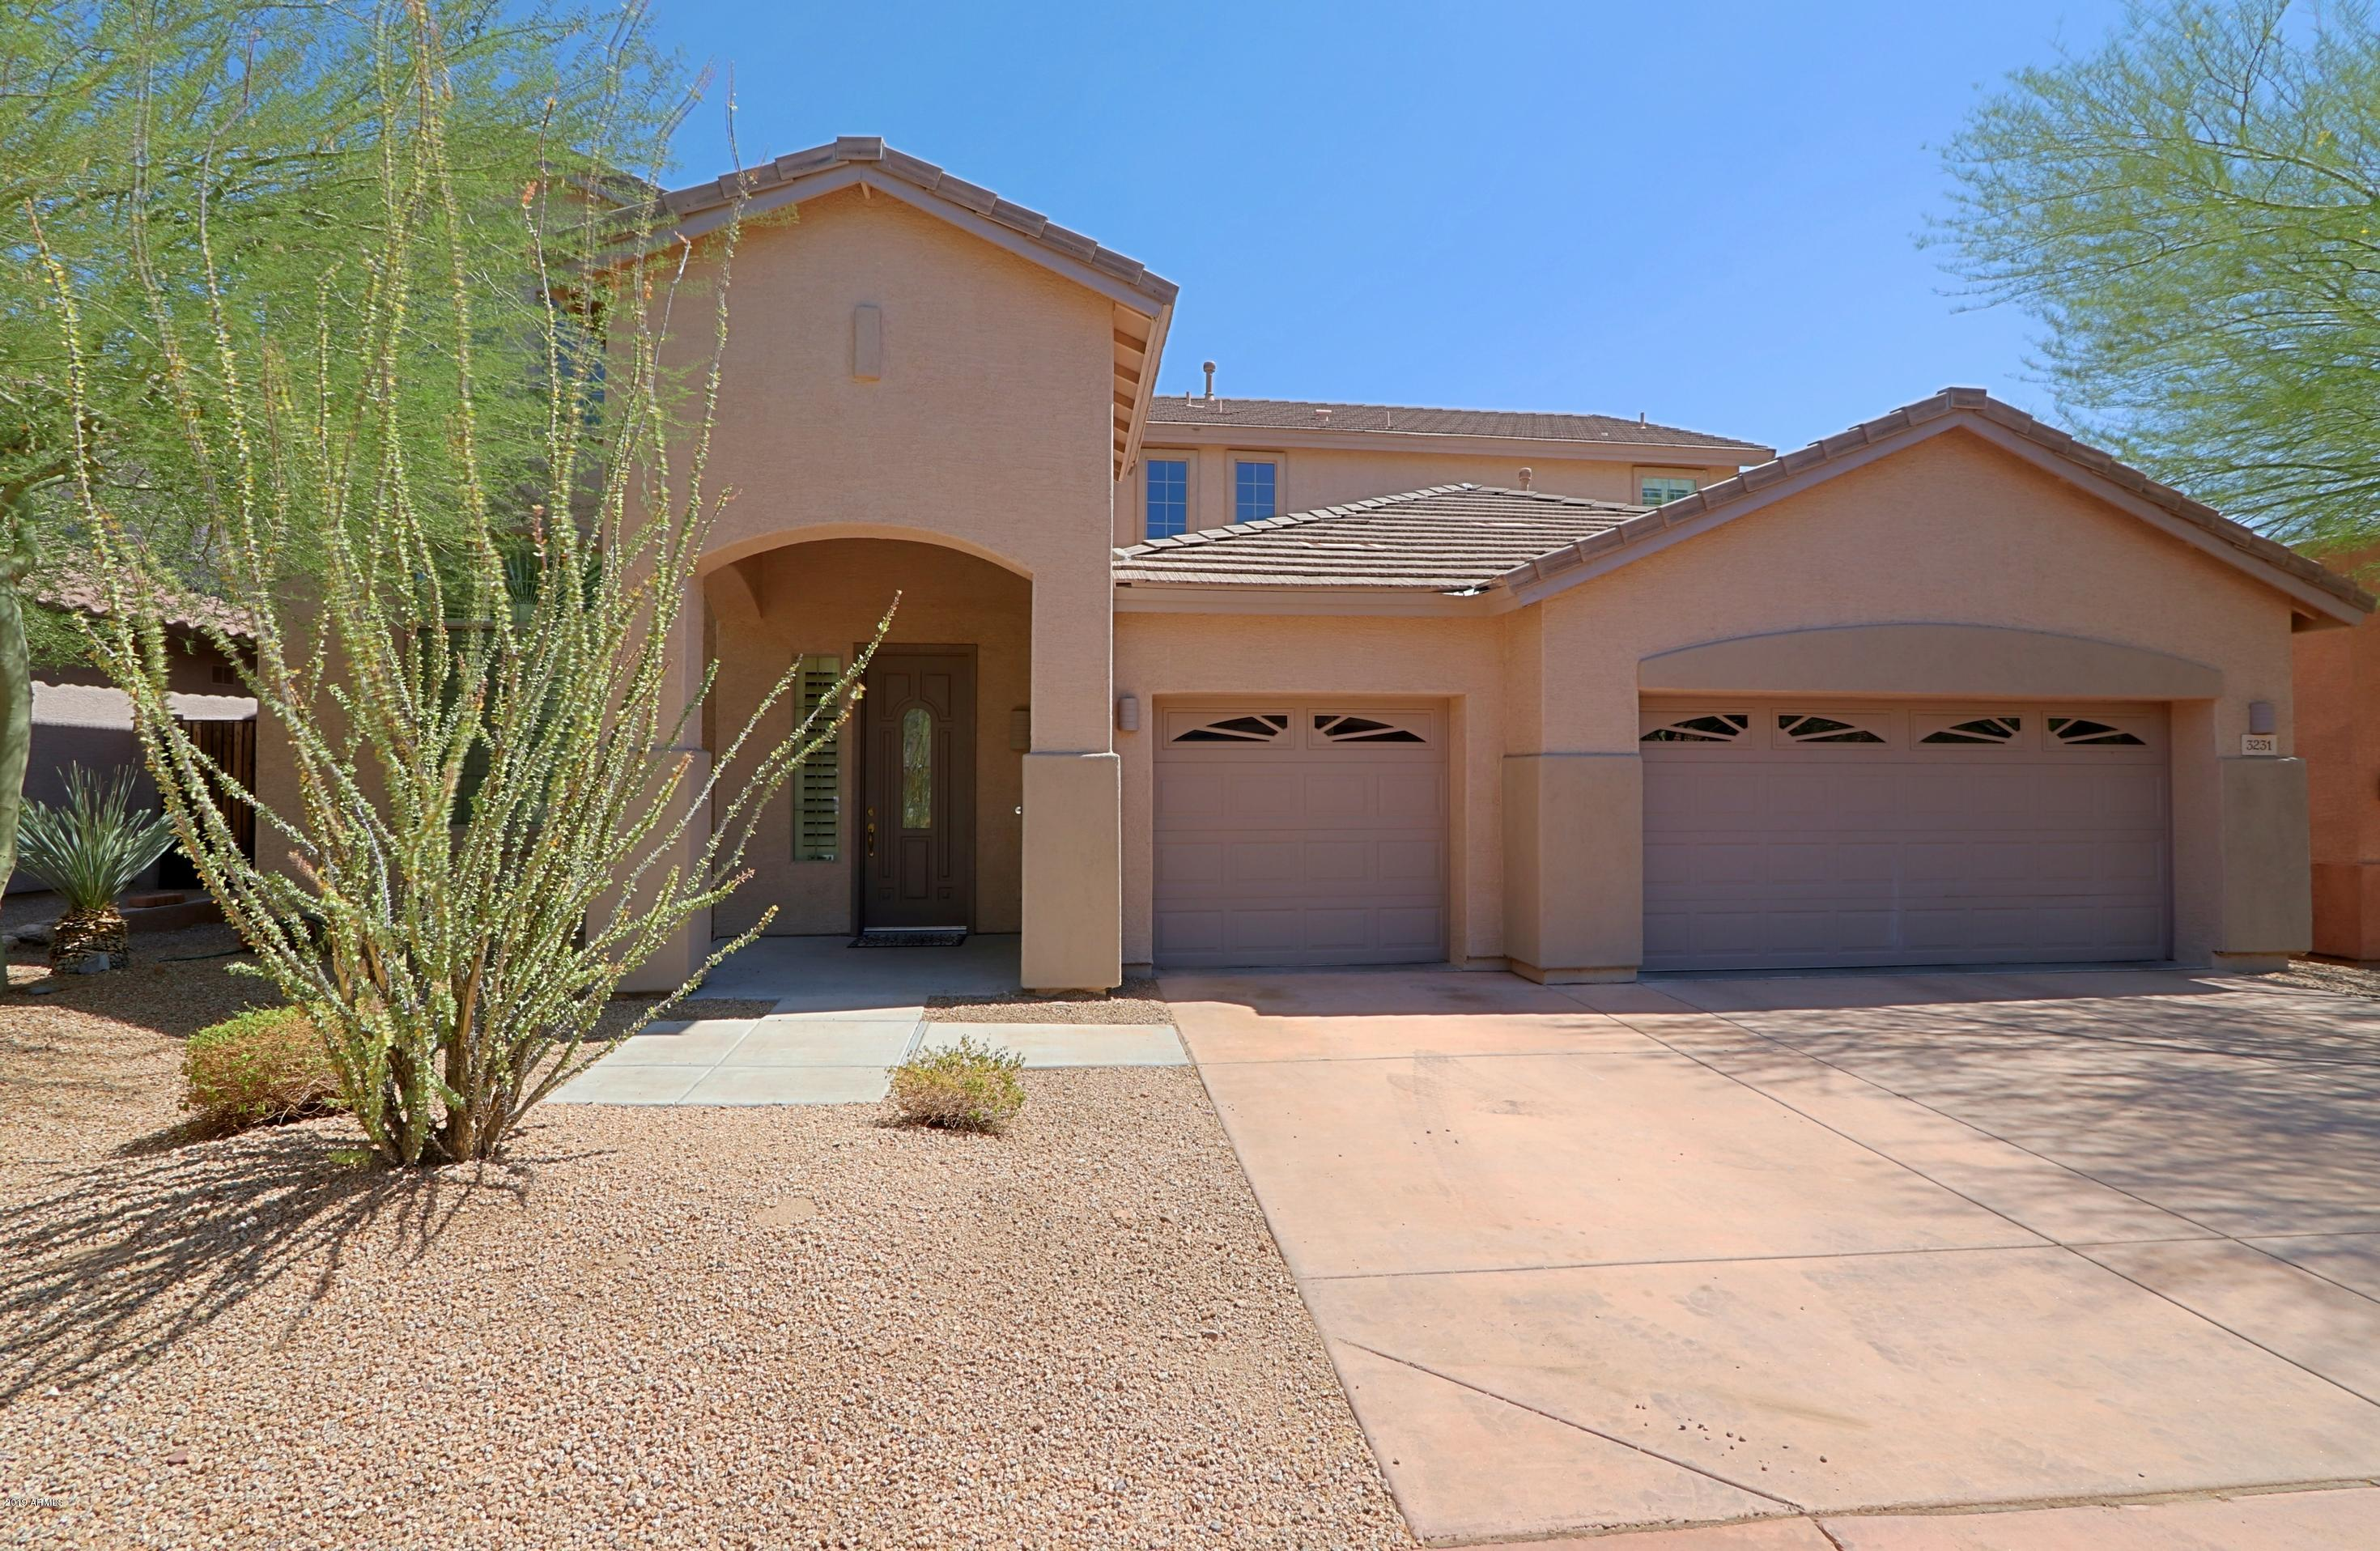 3231 W DONATELLO Drive, Anthem in Maricopa County, AZ 85086 Home for Sale